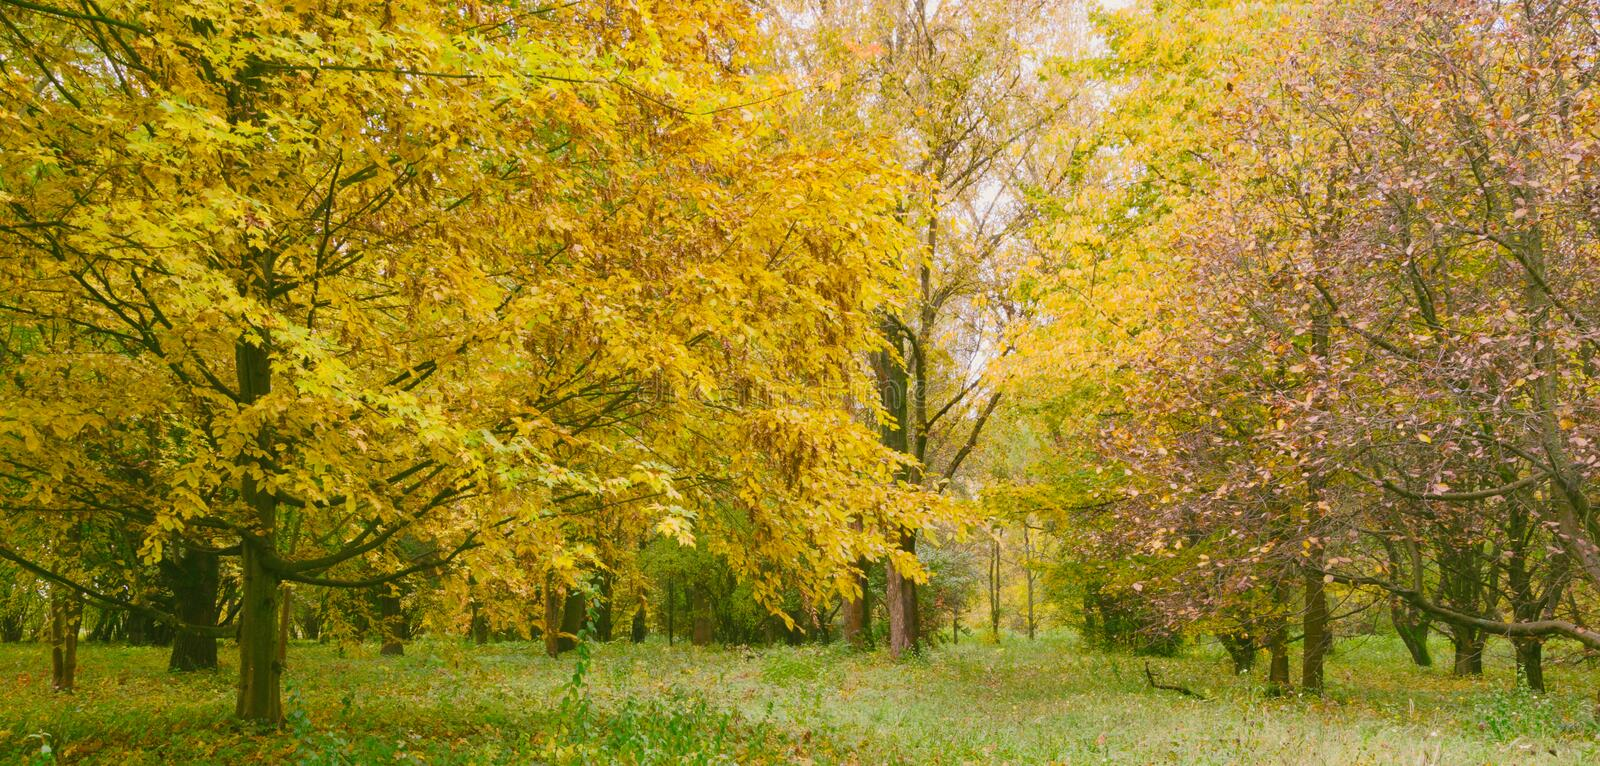 Changing colors of the forest. Vintage autumn season landscape in the Tiszalok Arboretum in Hungary. Hungarian countryside. Fallen yellow leaves stock images